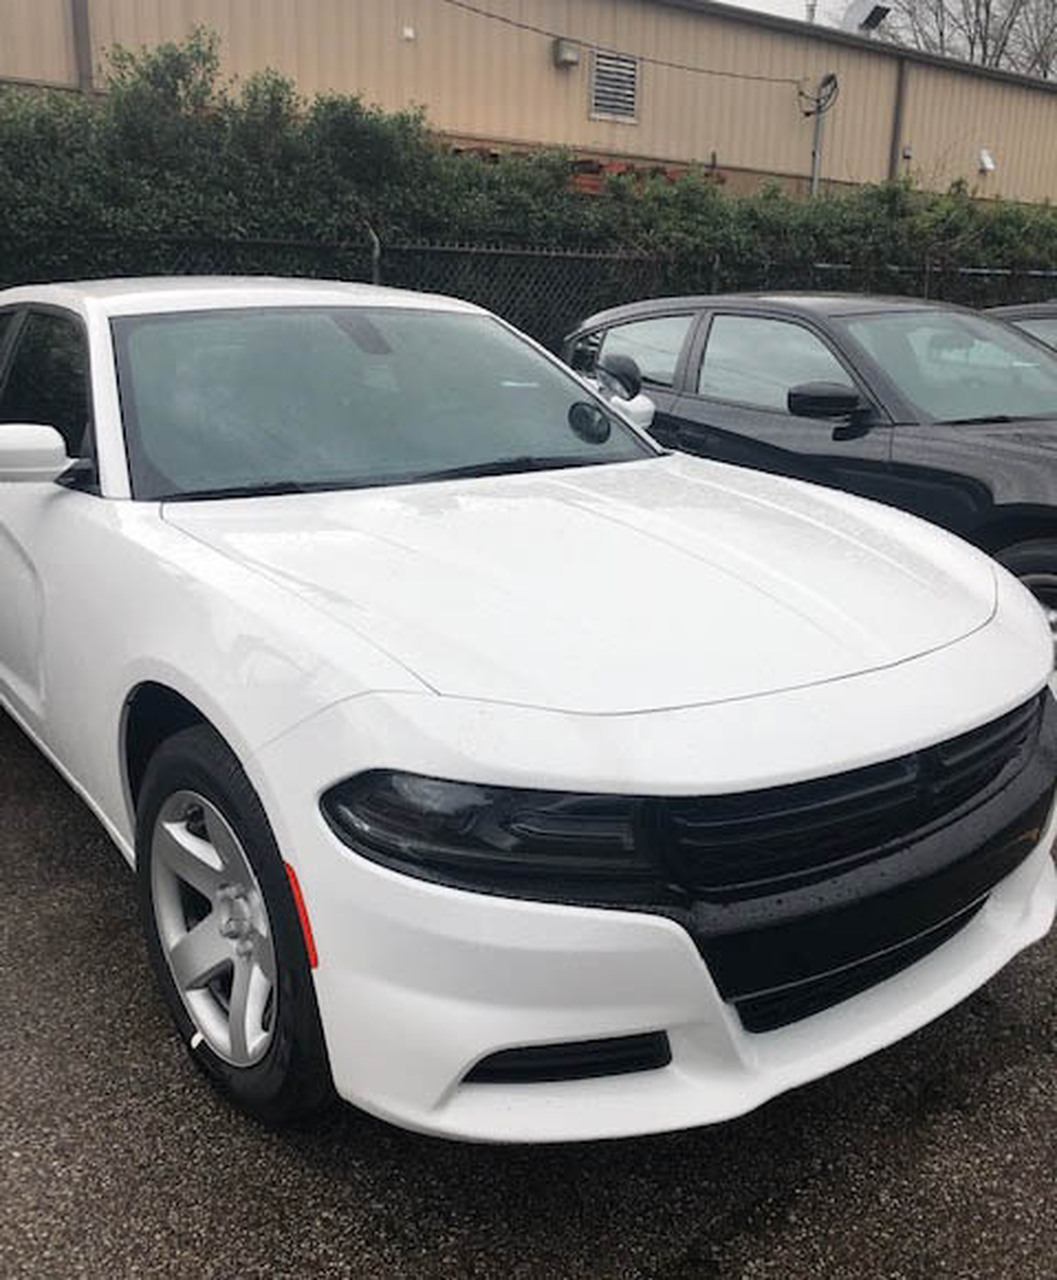 New 2019 White Dodge Charger V6 2WD, ready to be built as a Slick-Top Patrol Package Police Pursuit Car,  choose any color LED Lights, + Delivery